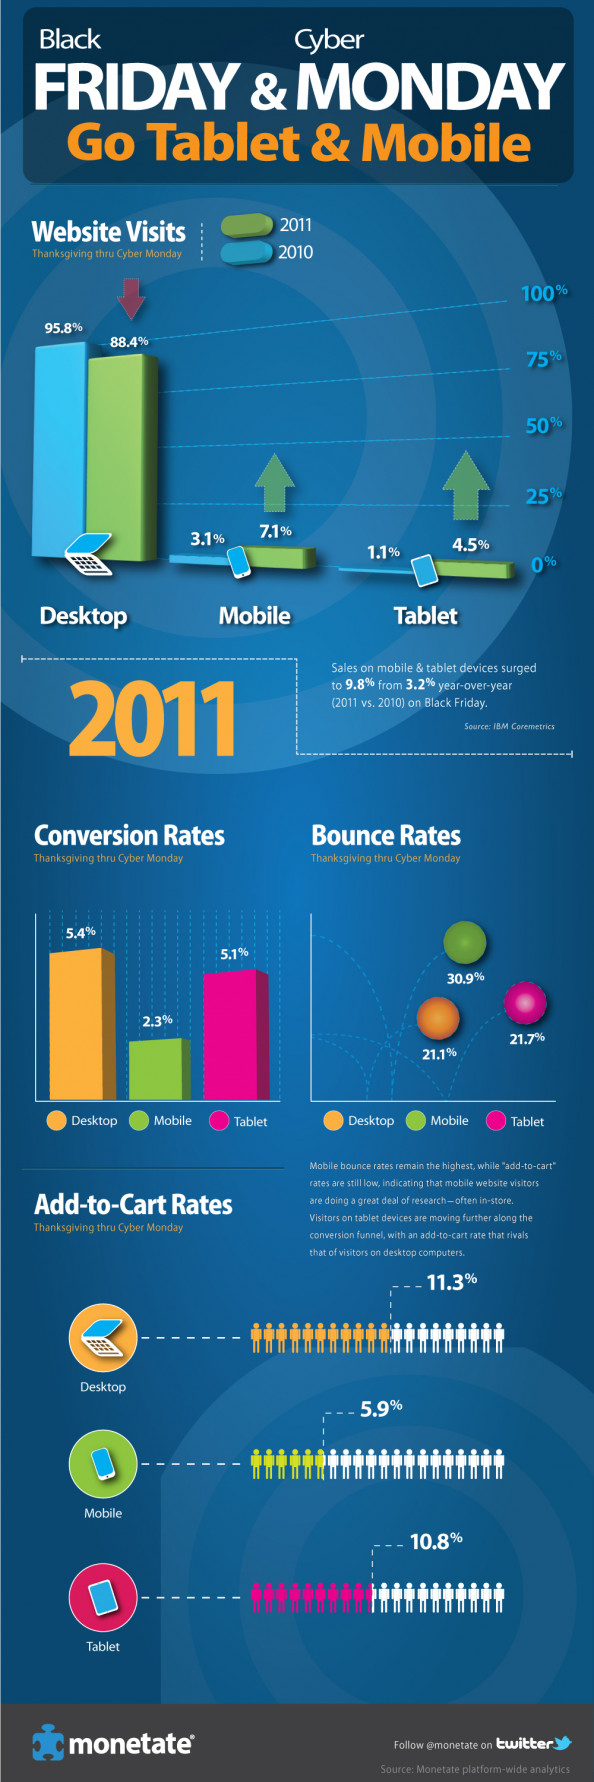 Black Friday and Cyber Monday Go Tablet and Mobile Infographic